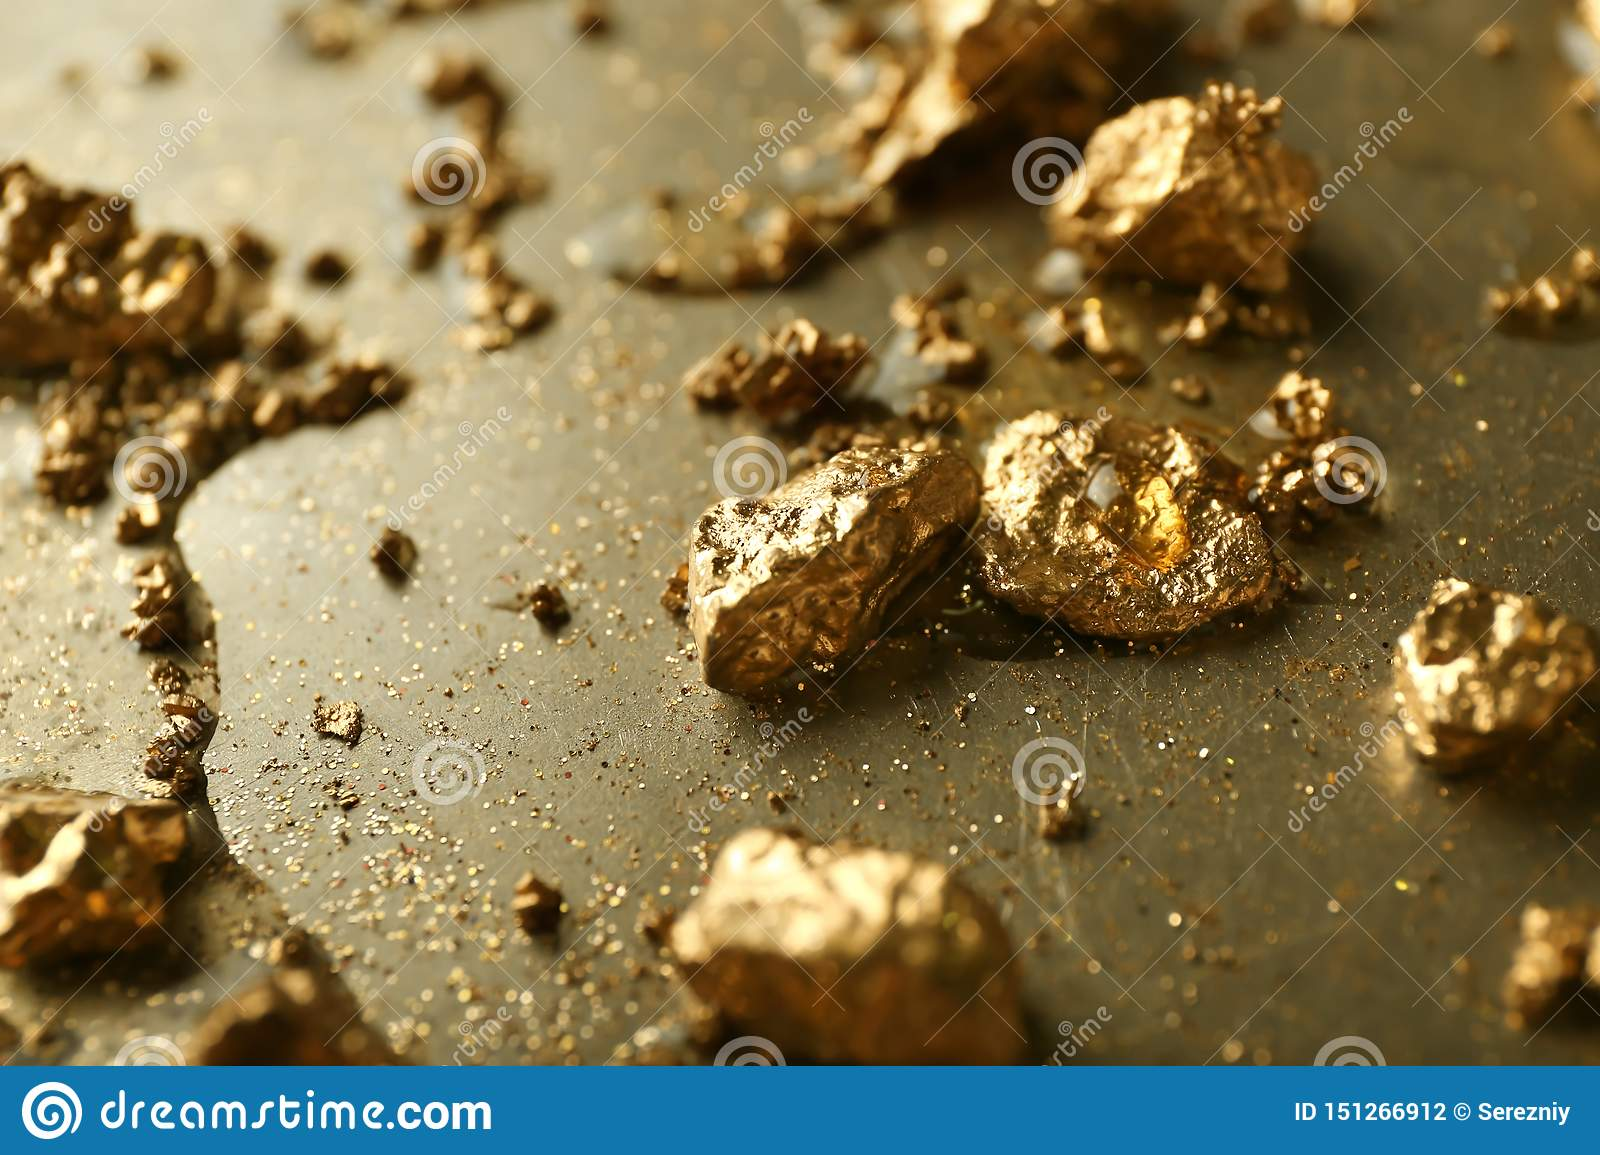 Gold Nuggets Stock Images - Download 3,174 Royalty Free ...